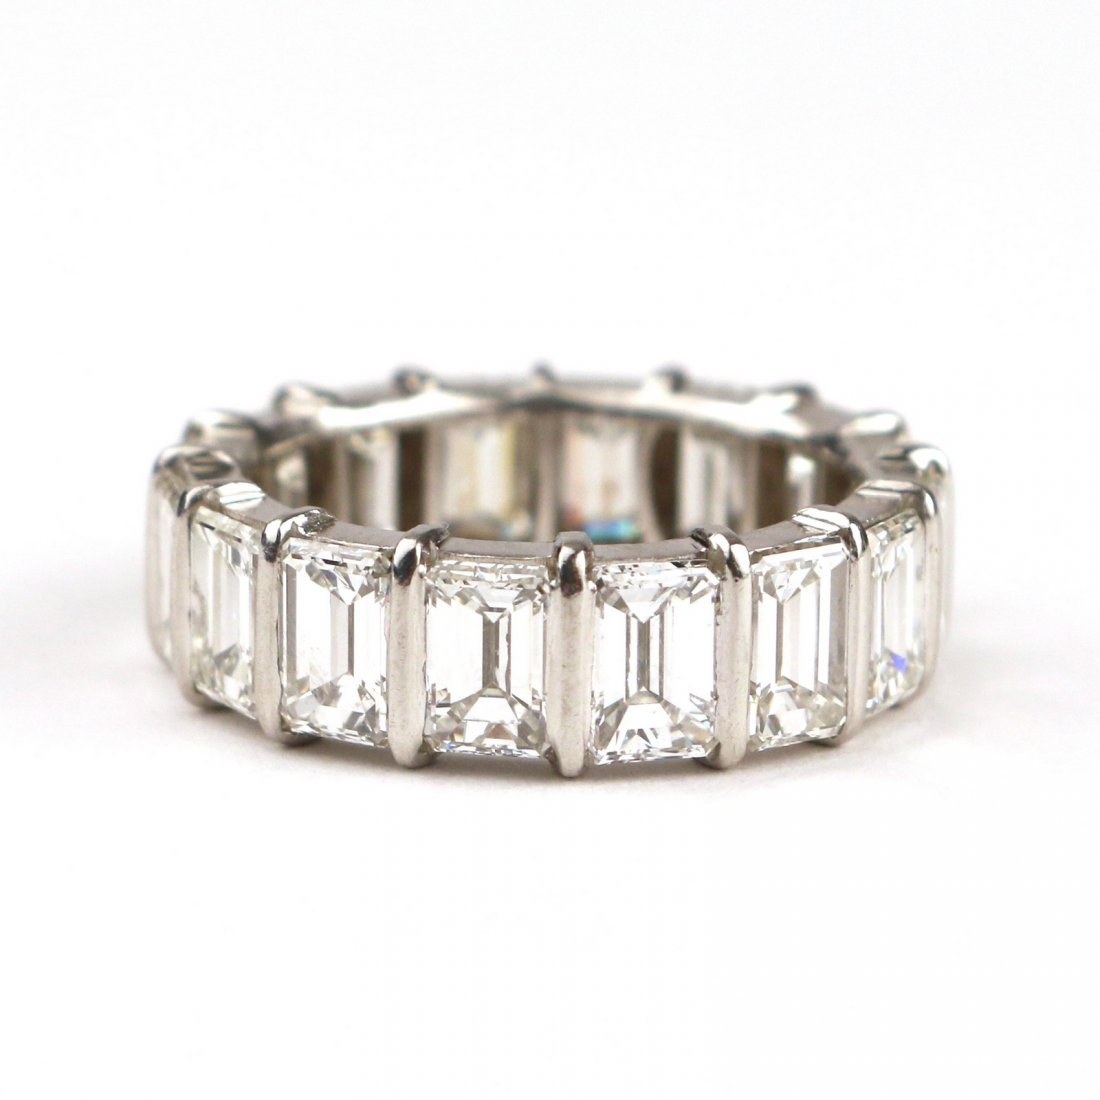 EMERALD CUT DIAMOND ETERNITY BAND - 2